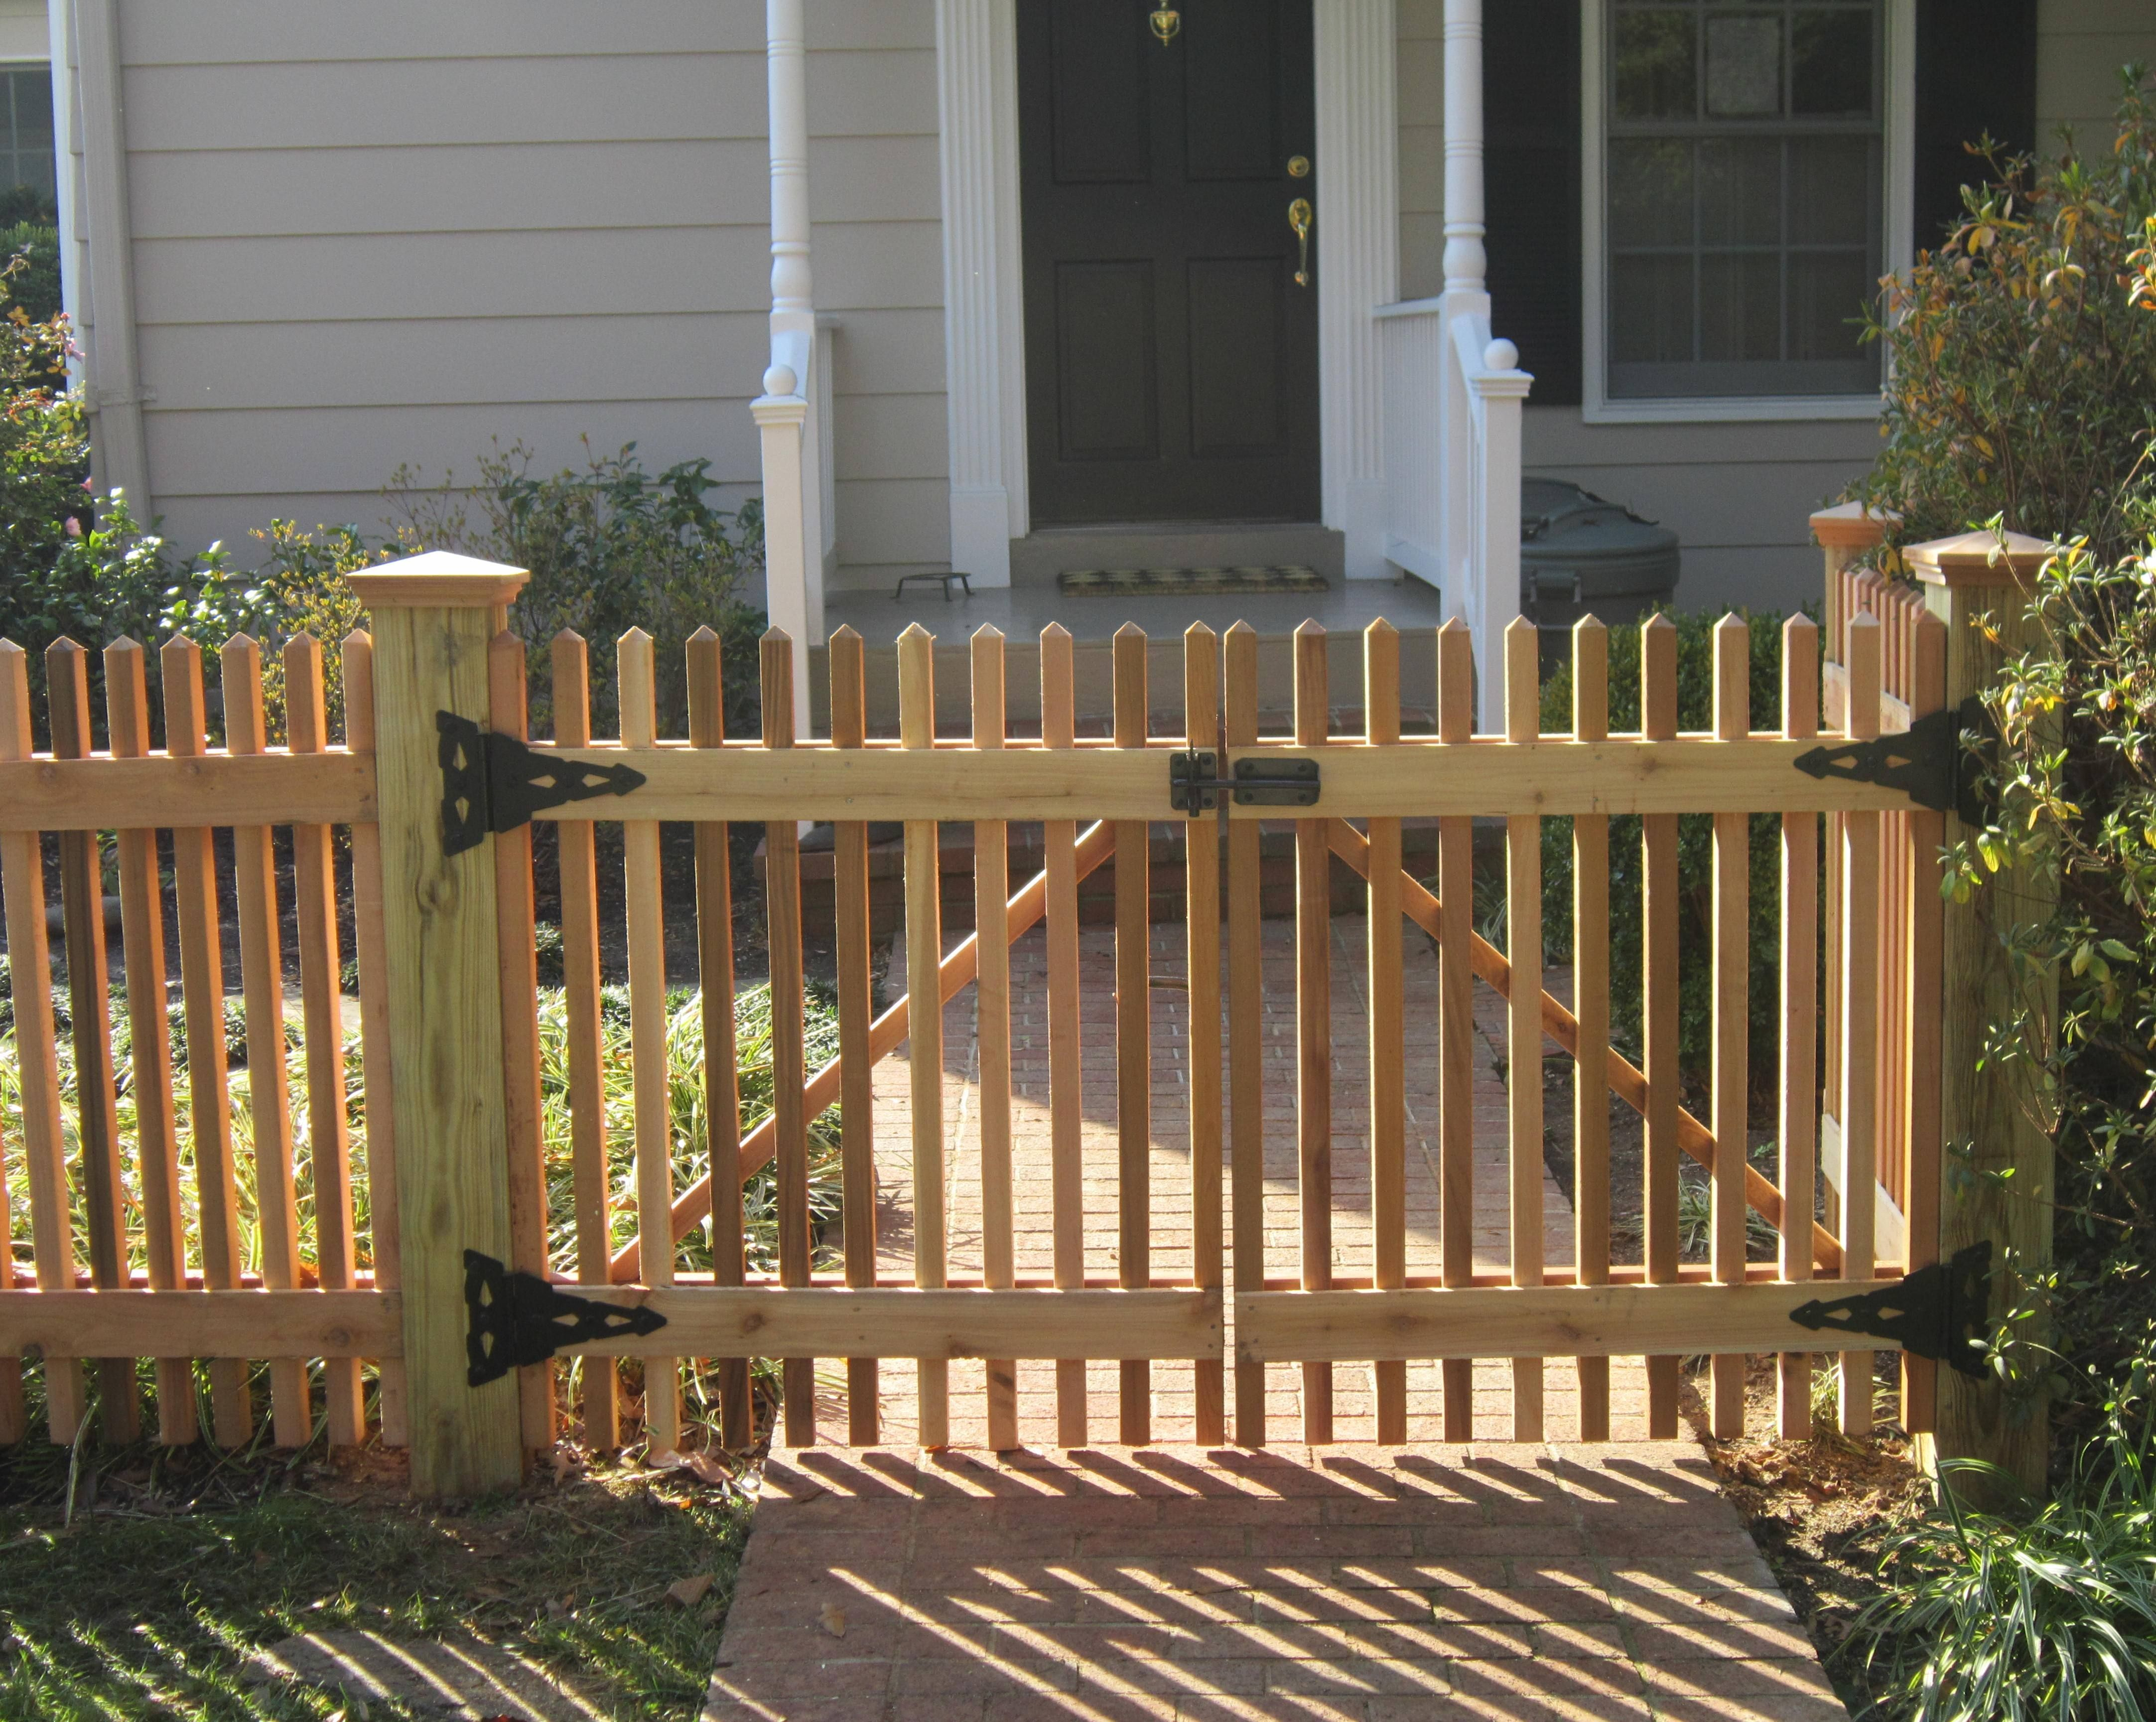 13 striking garden fencing climbing vines ideas in 2020 on inexpensive way to build a wood privacy fence diy guide for 2020 id=41693